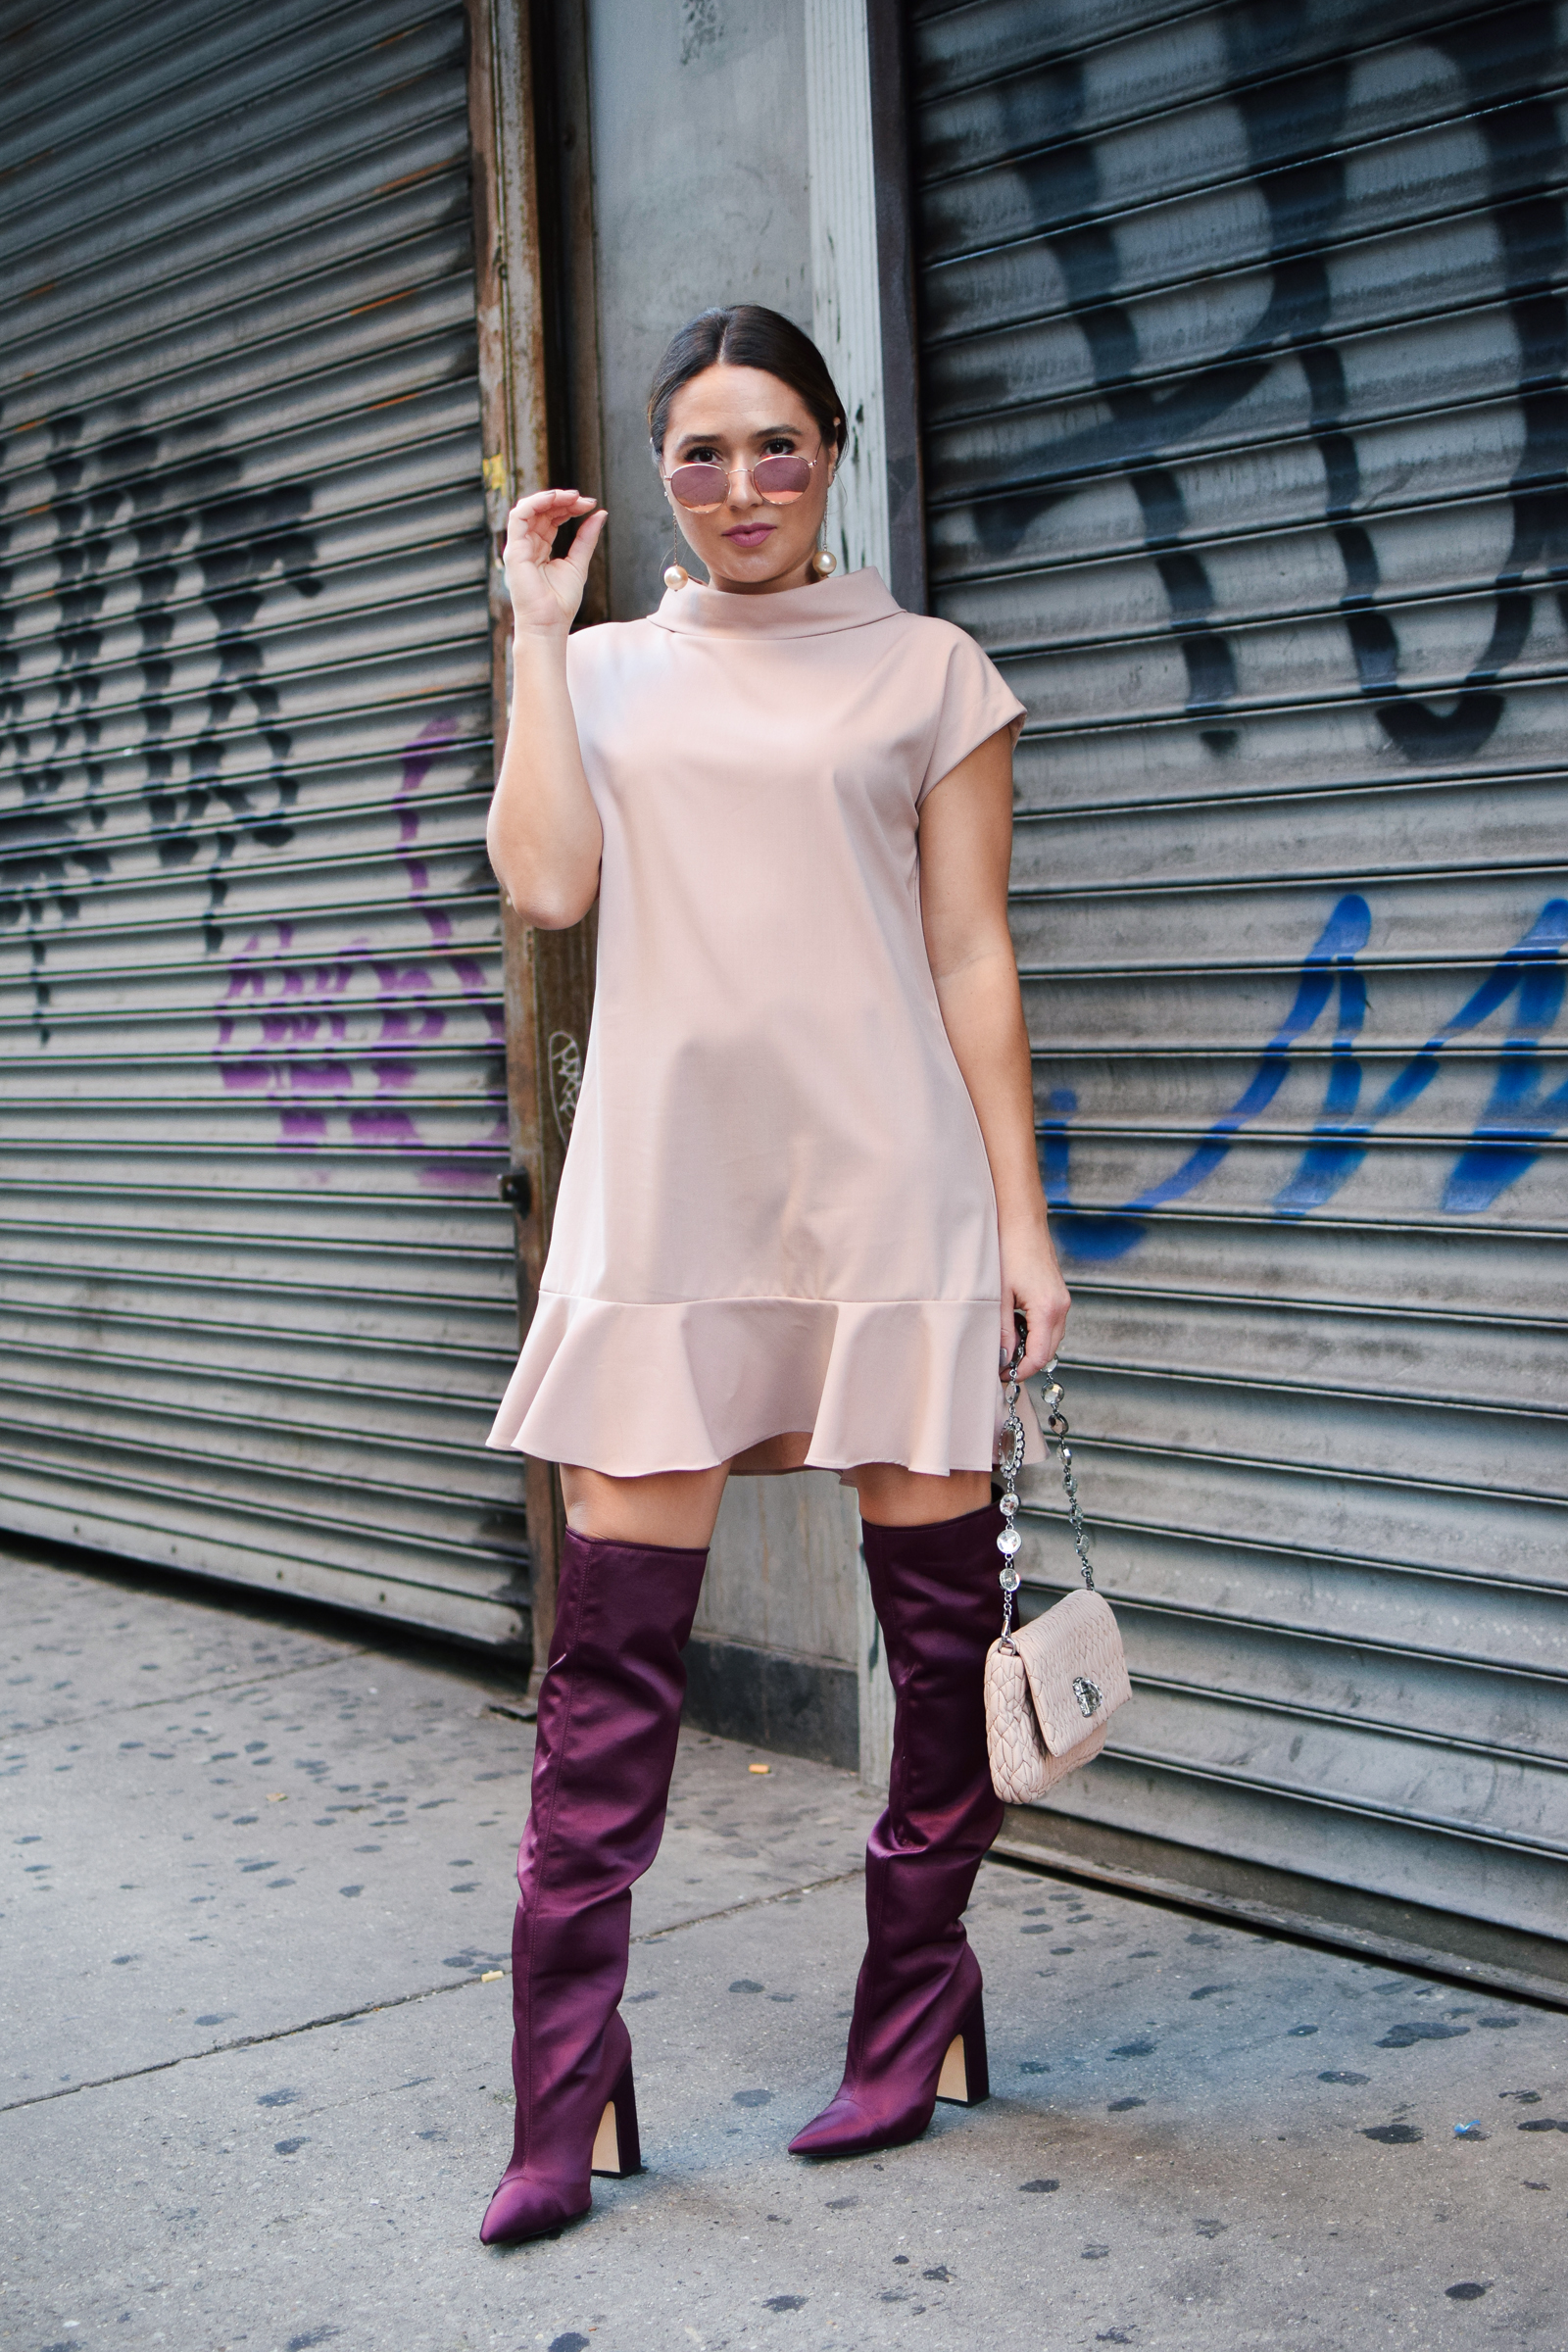 new-york-fashion-week-outfit-blush-dress-maroon-purple-boots-nyfw-blush-sunglasses-pearl-drop-earring-miu-miu-bag